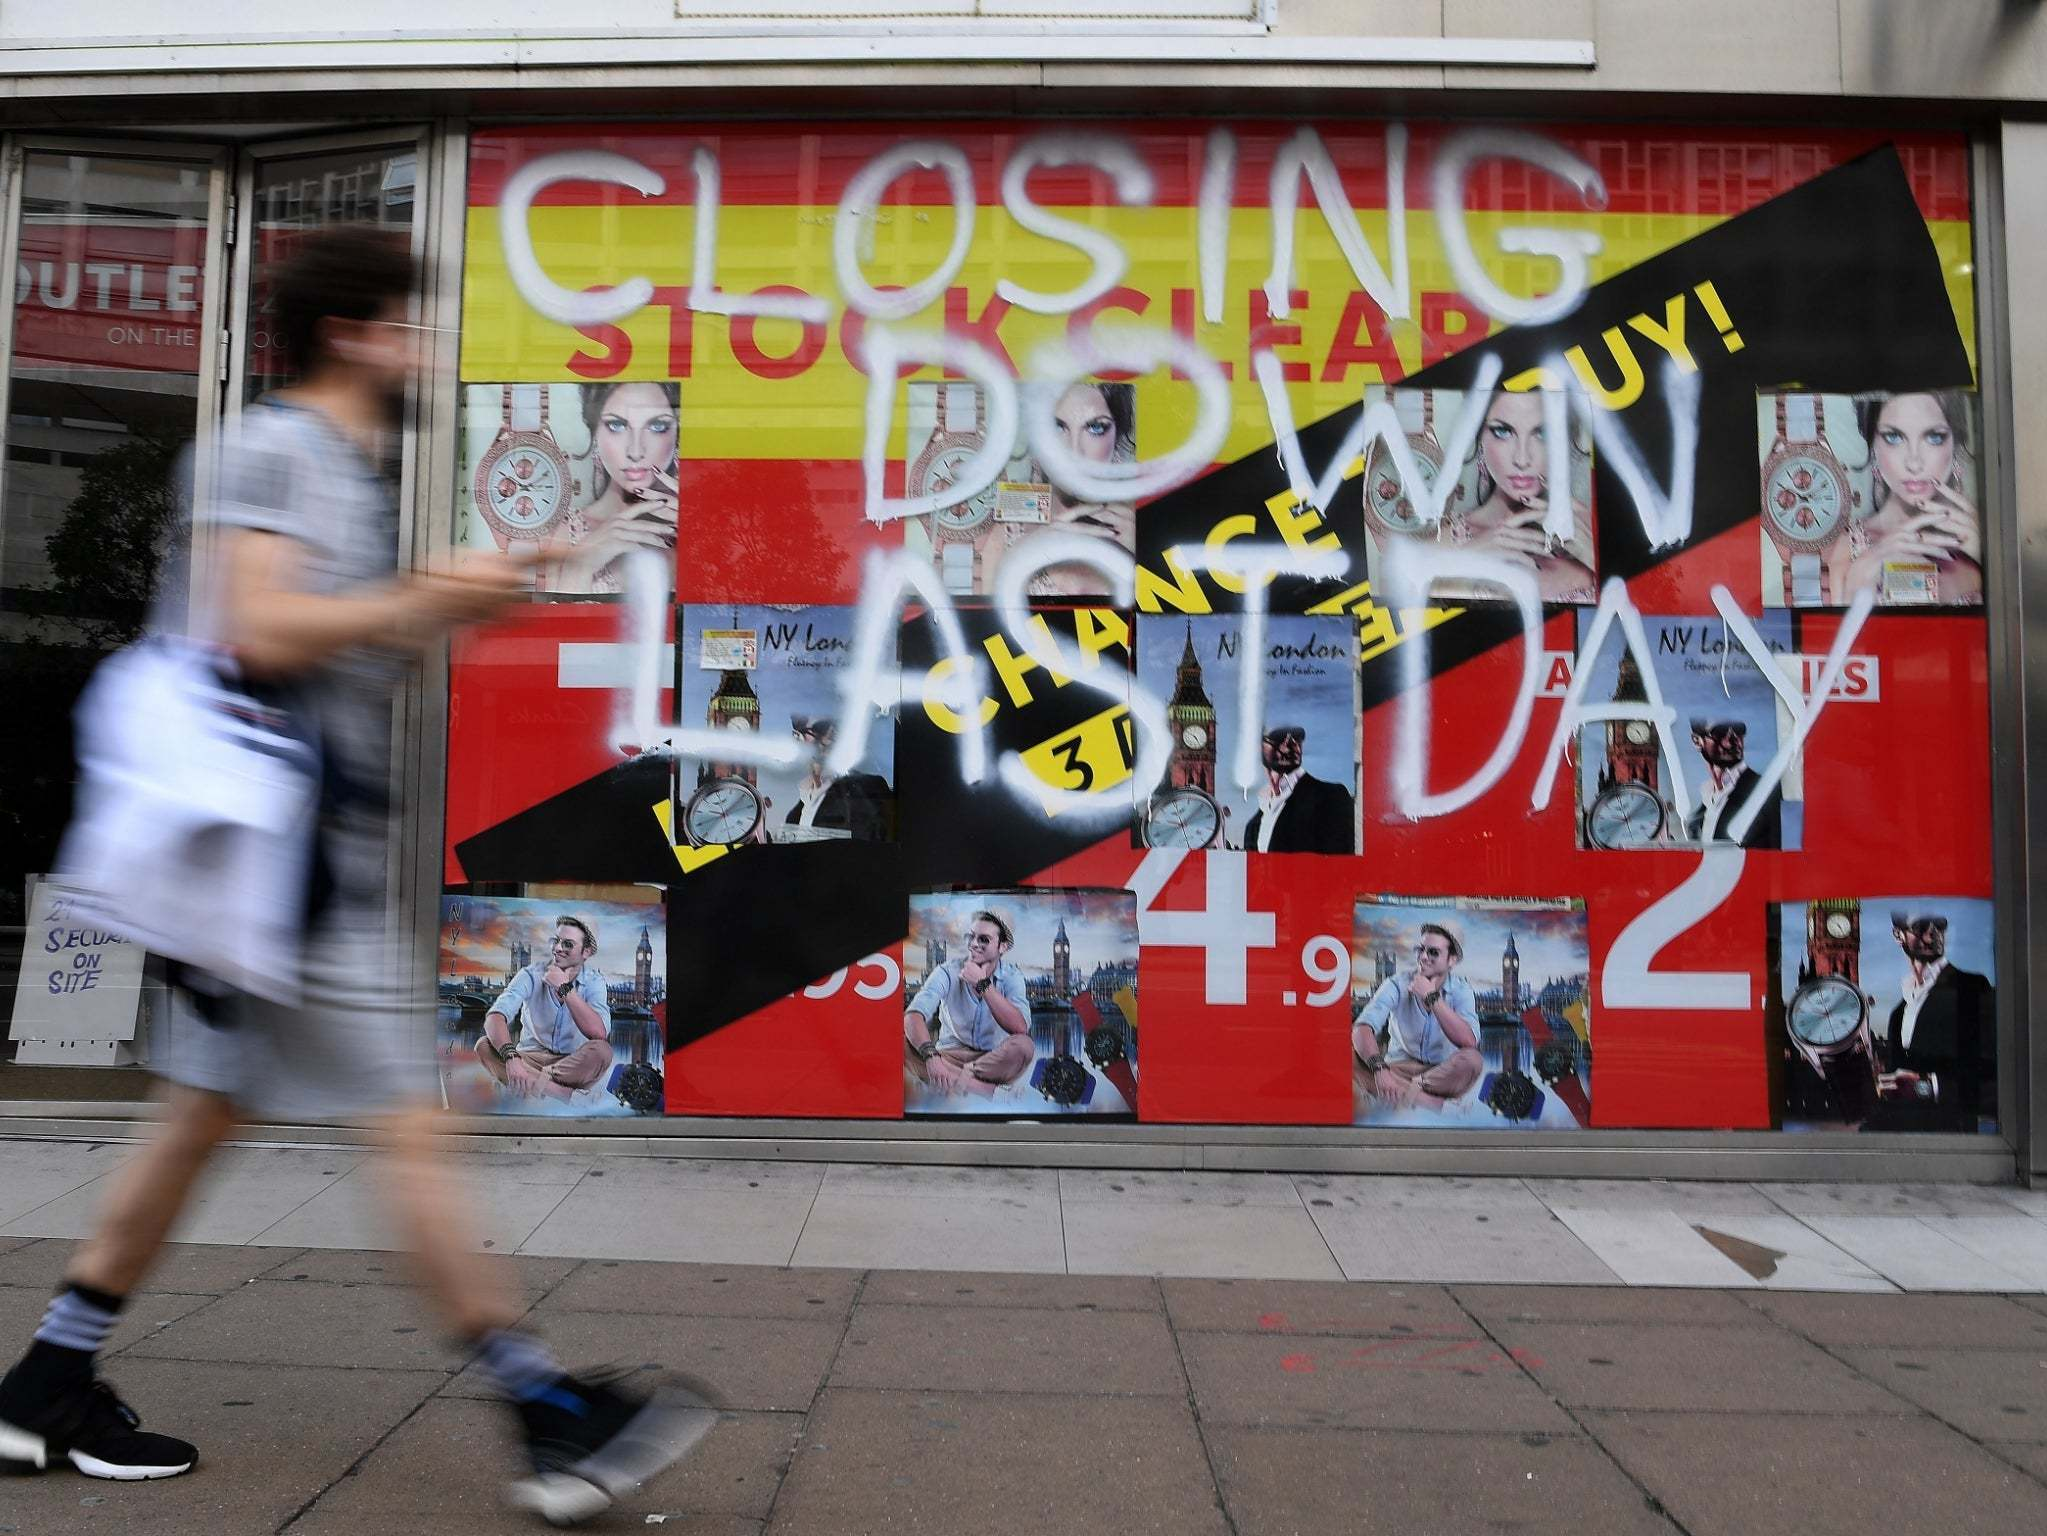 How bad are job losses going to be and what can the government do about it?